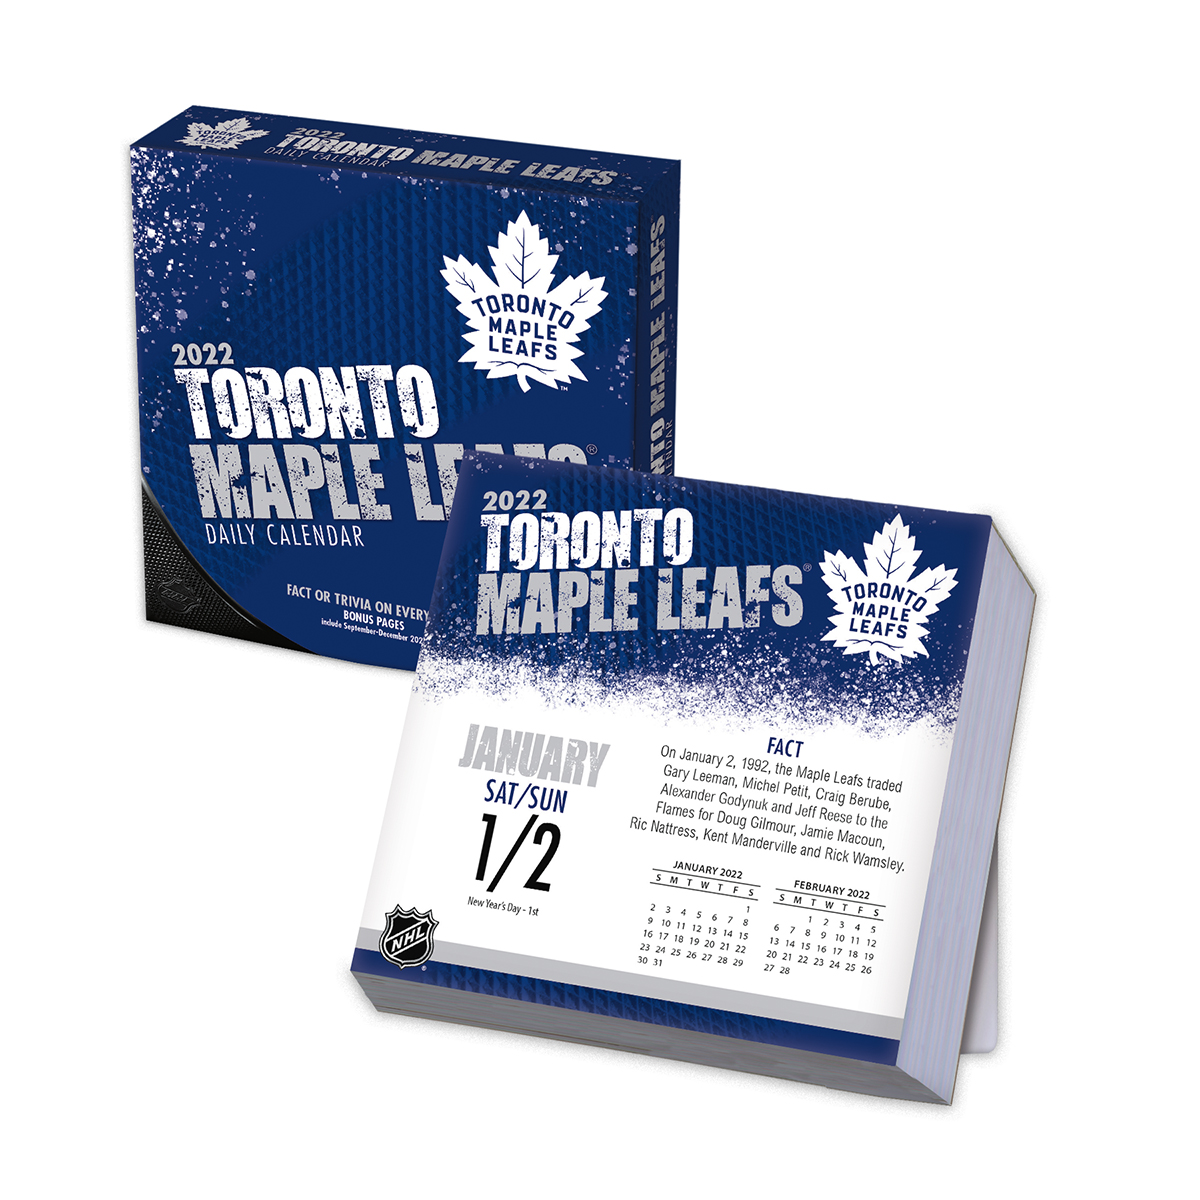 how to buy toronto maple leafs tickets